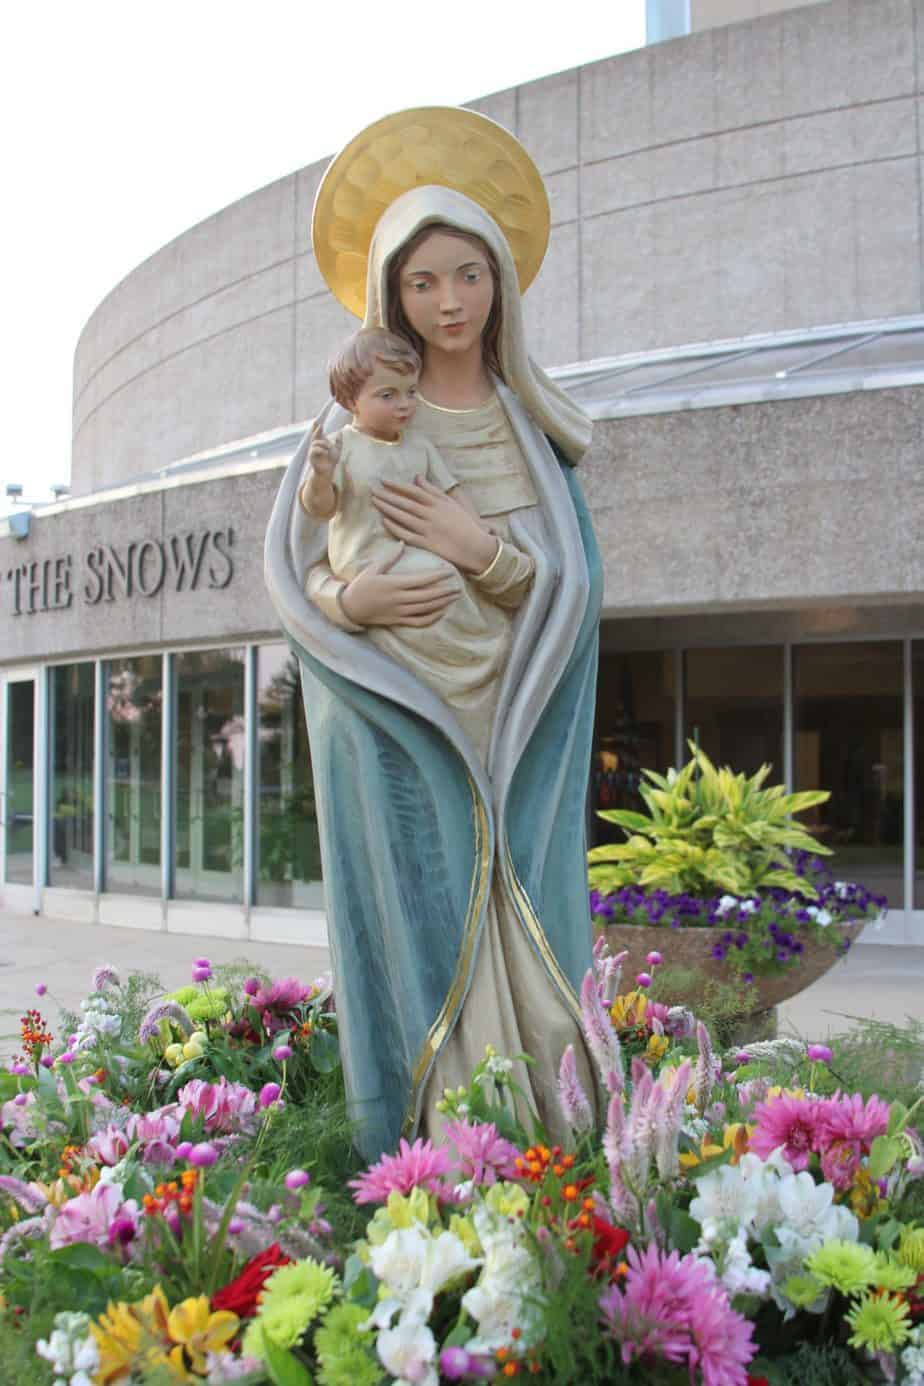 Statue of the Blessed Mother at Shrine of Our Lady of the Snows Belleville, Illinois